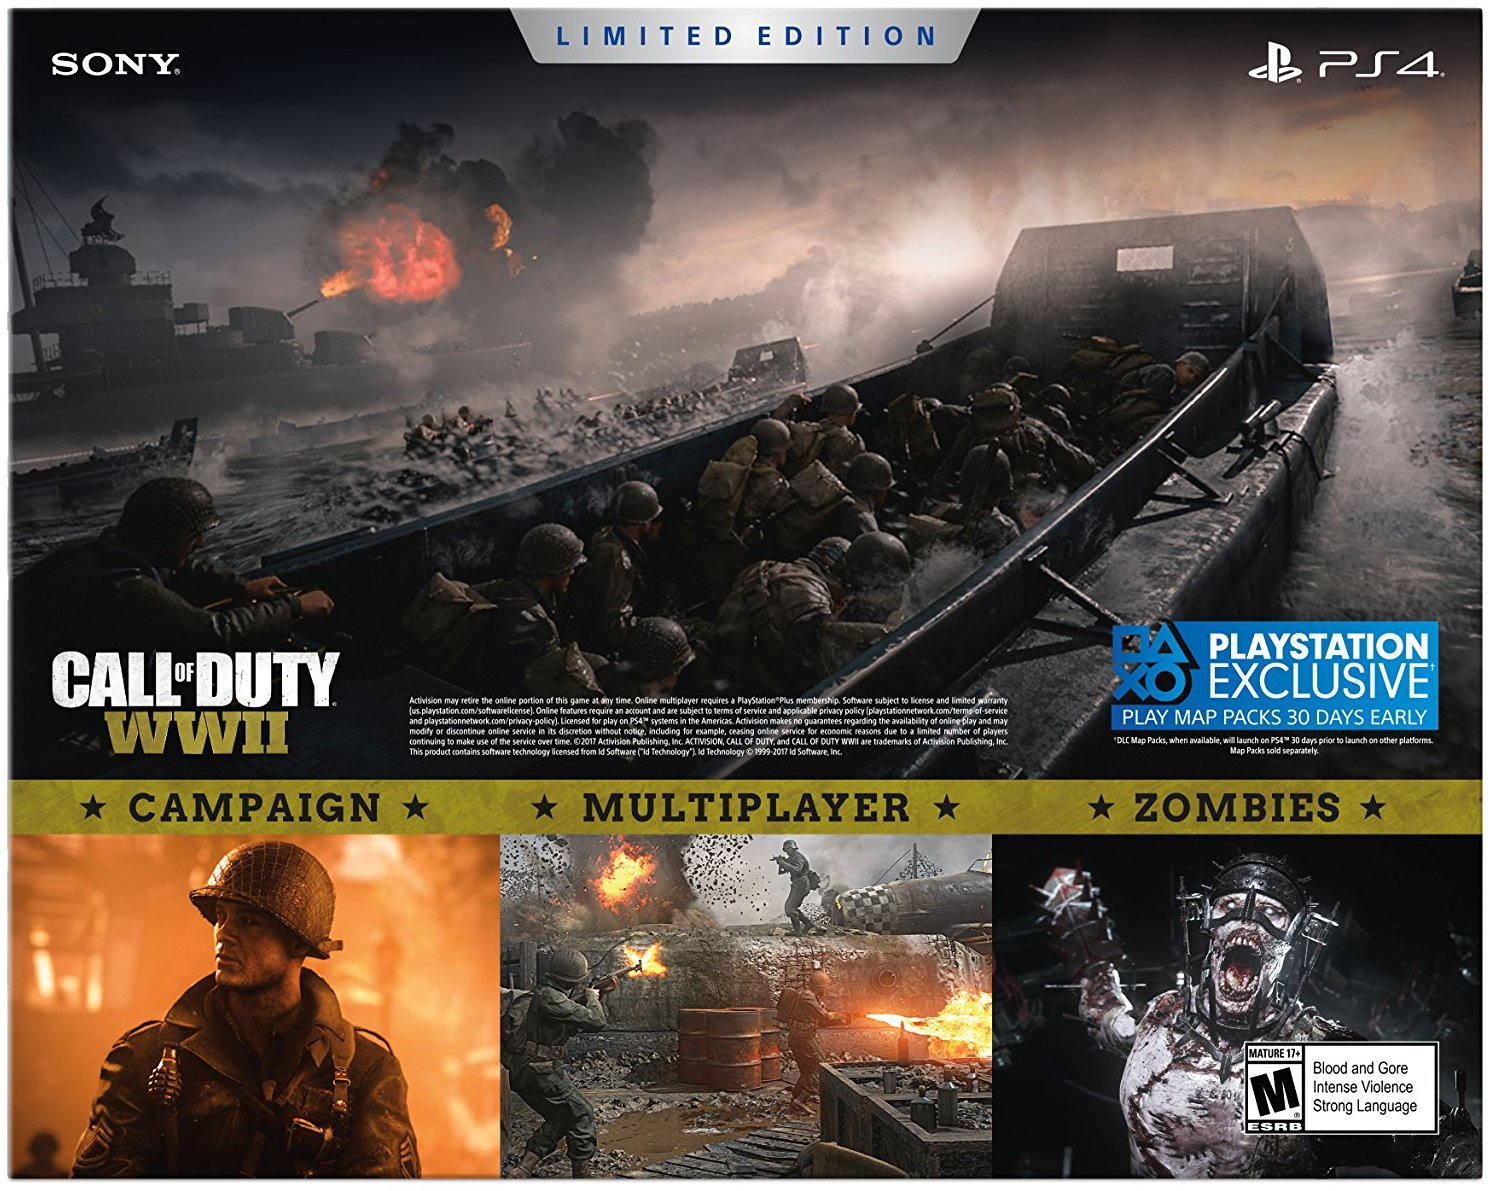 Sony Playstation 4 1tb Call Of Duty Wwii Limited Edition Bundle 3002200 Walmart Com Walmart Com